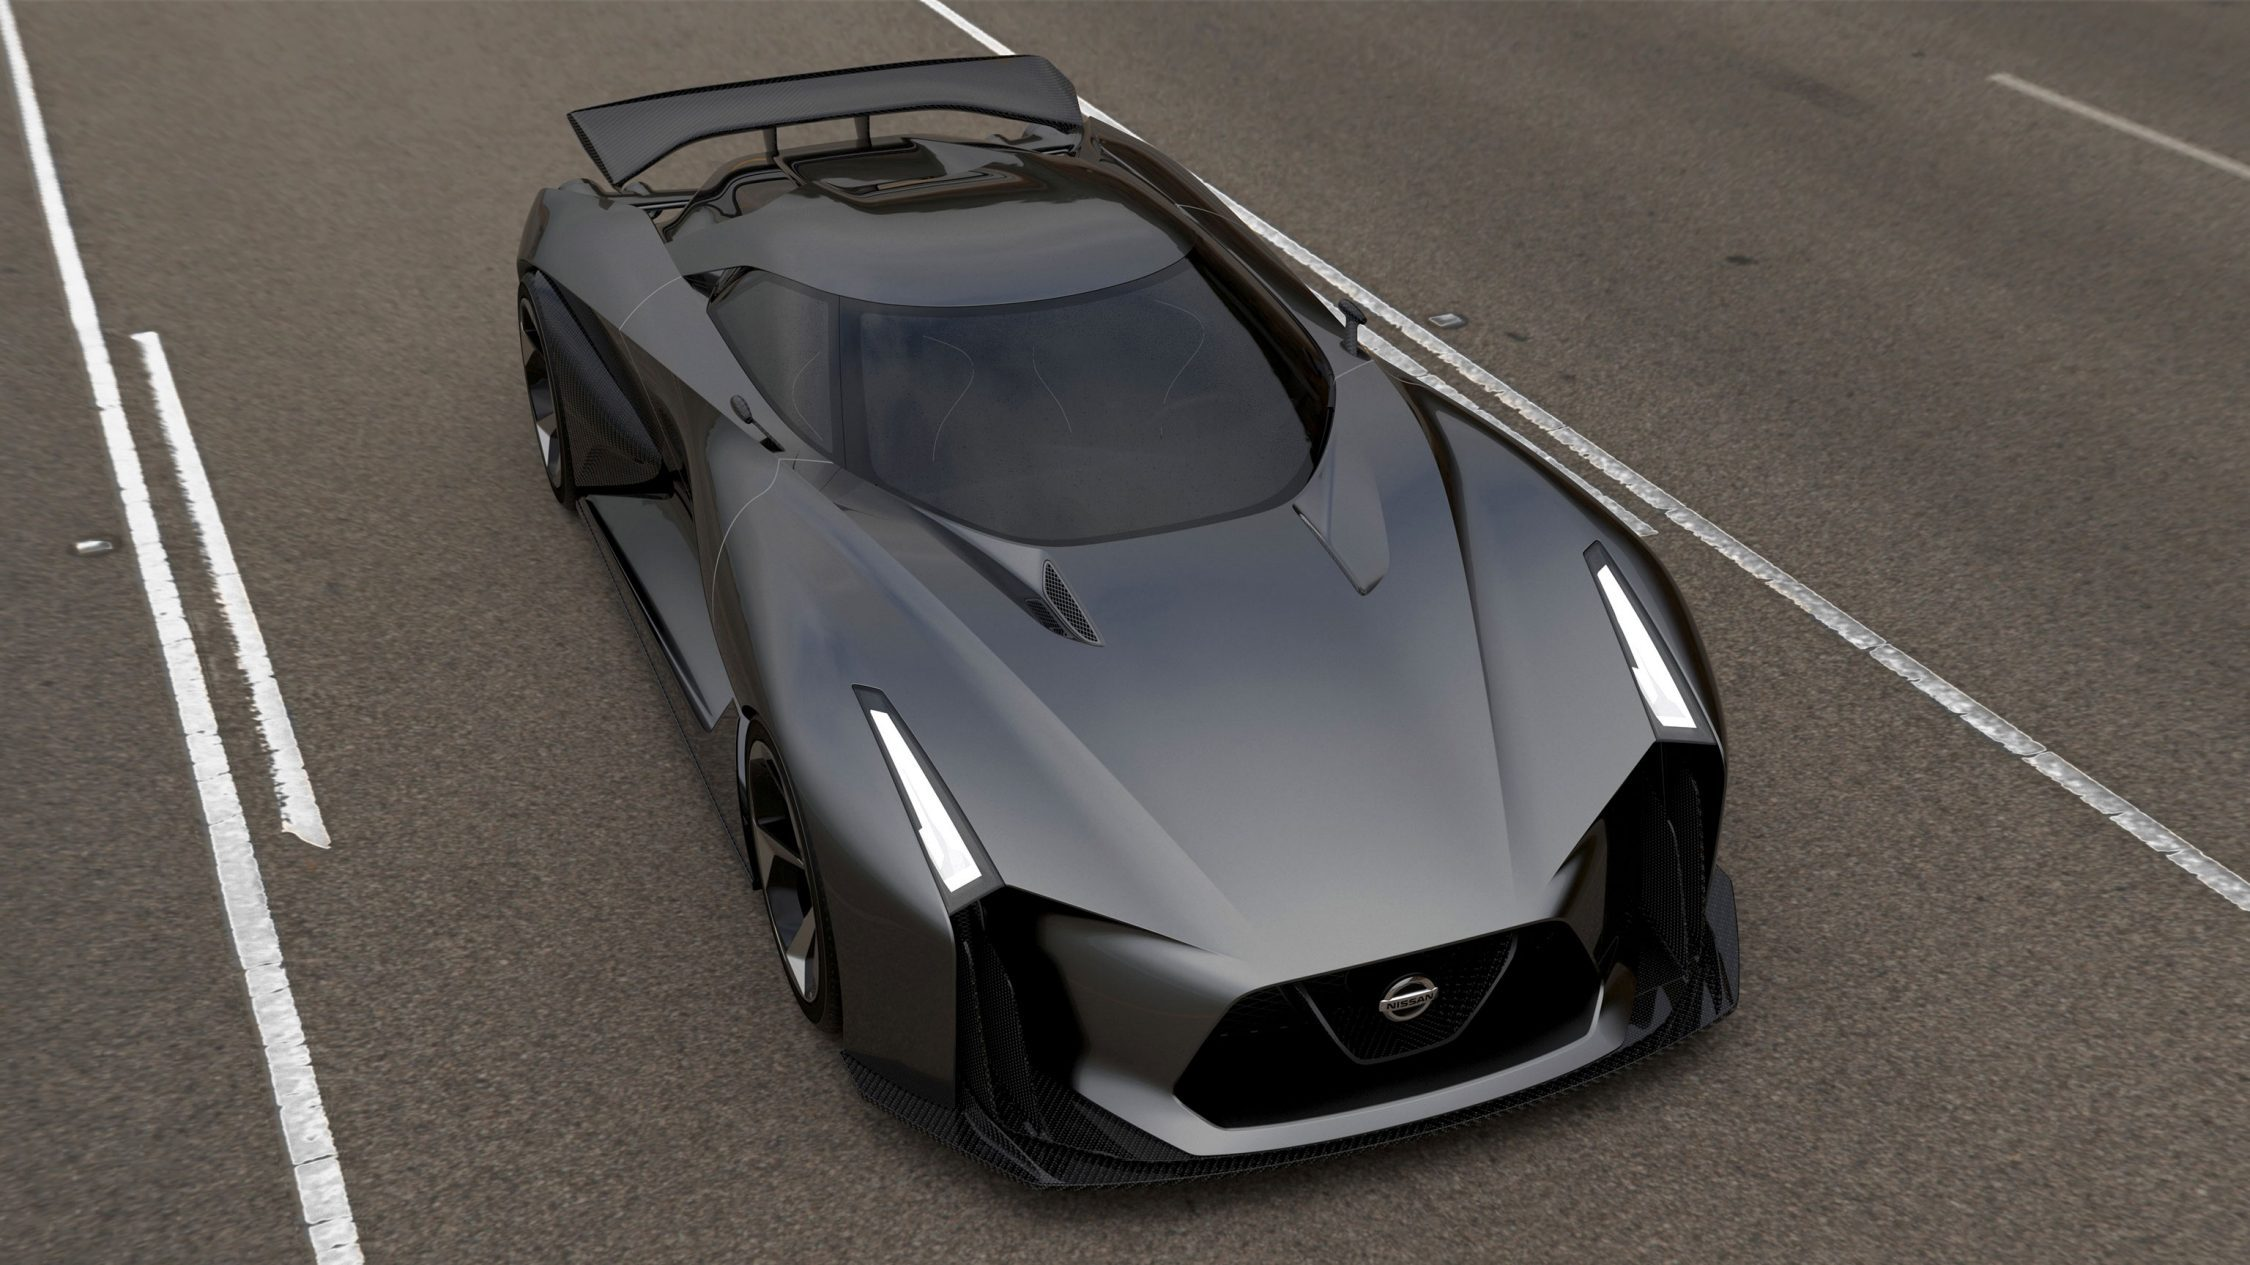 Nissan Concept 2020 Vision Gran Turismo overhead front